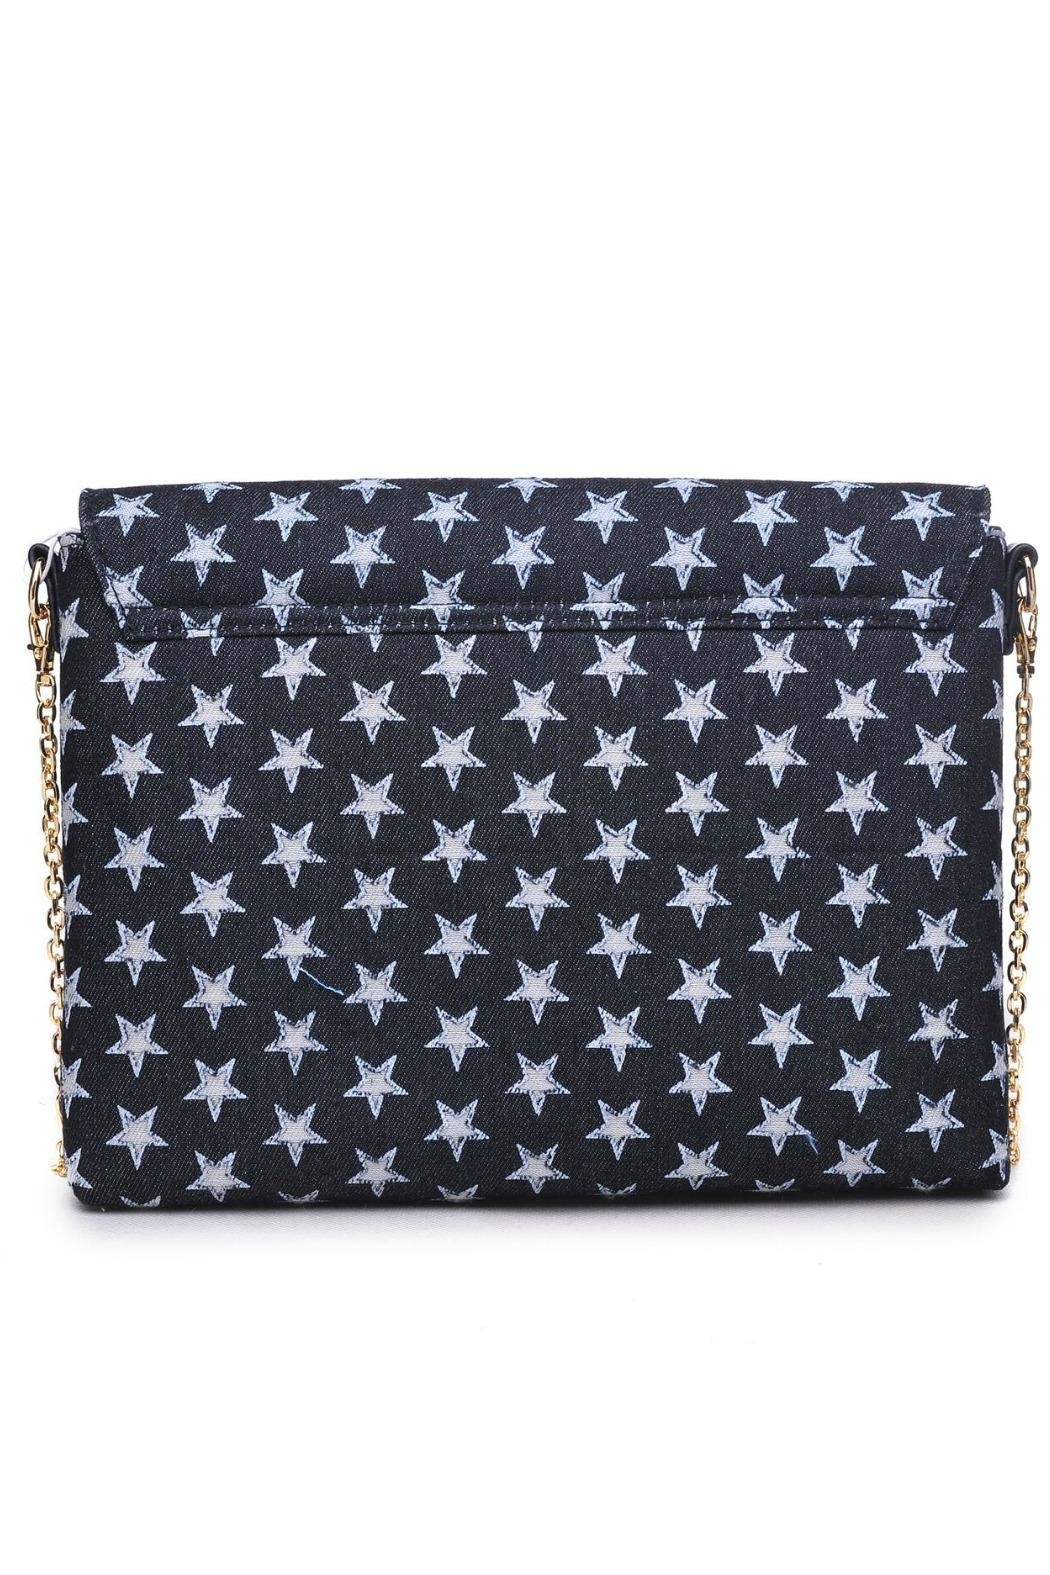 Urban Expressions Star Denim Clutch - Front Full Image